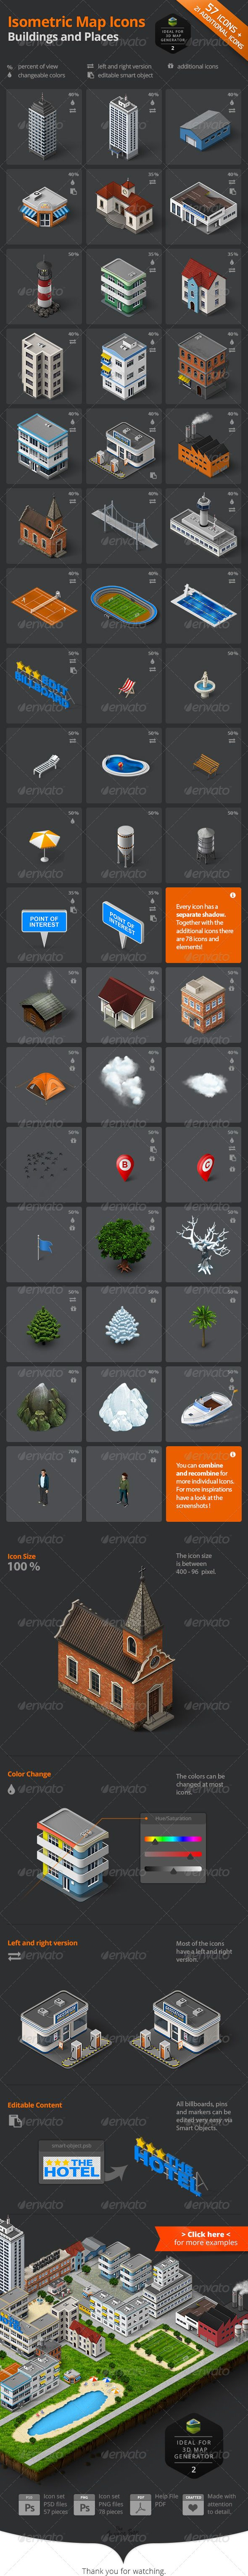 Isometric Map Icons - Buildings and Places  Check out this great! #Icons - Isometric Map Icons - Buildings and Places | #mapicons #map #iconsdesign #icondesign